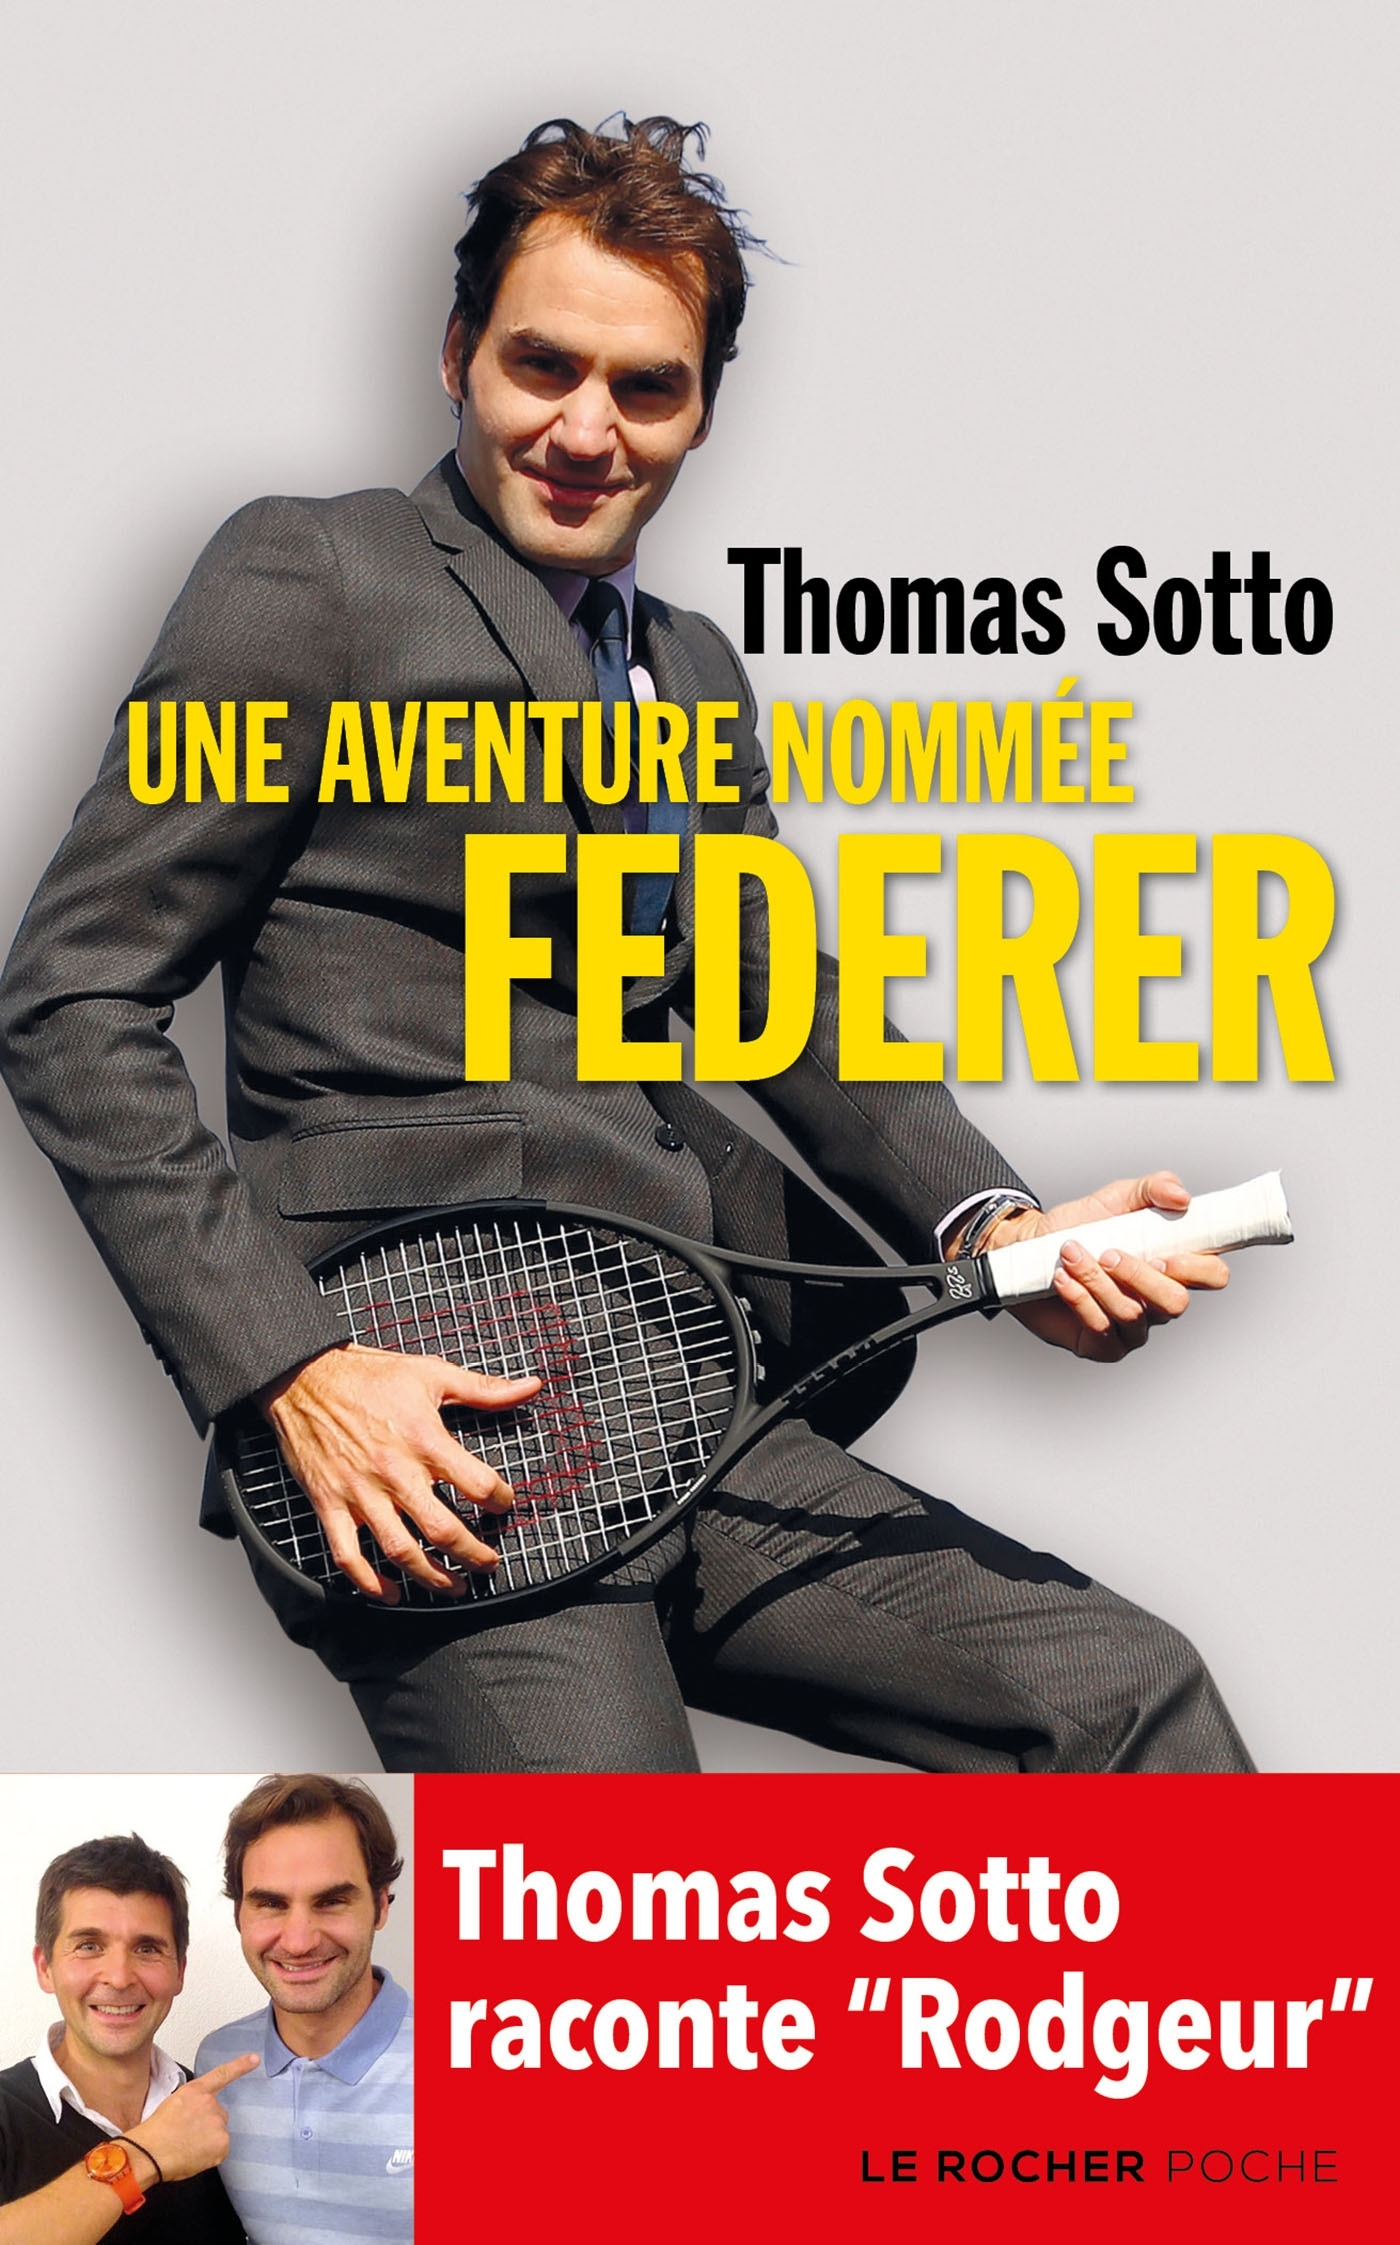 """UNE AVENTURE NOMMEE FEDERER - THOMAS SOTTO RACONTE """"RODGEUR"""""""